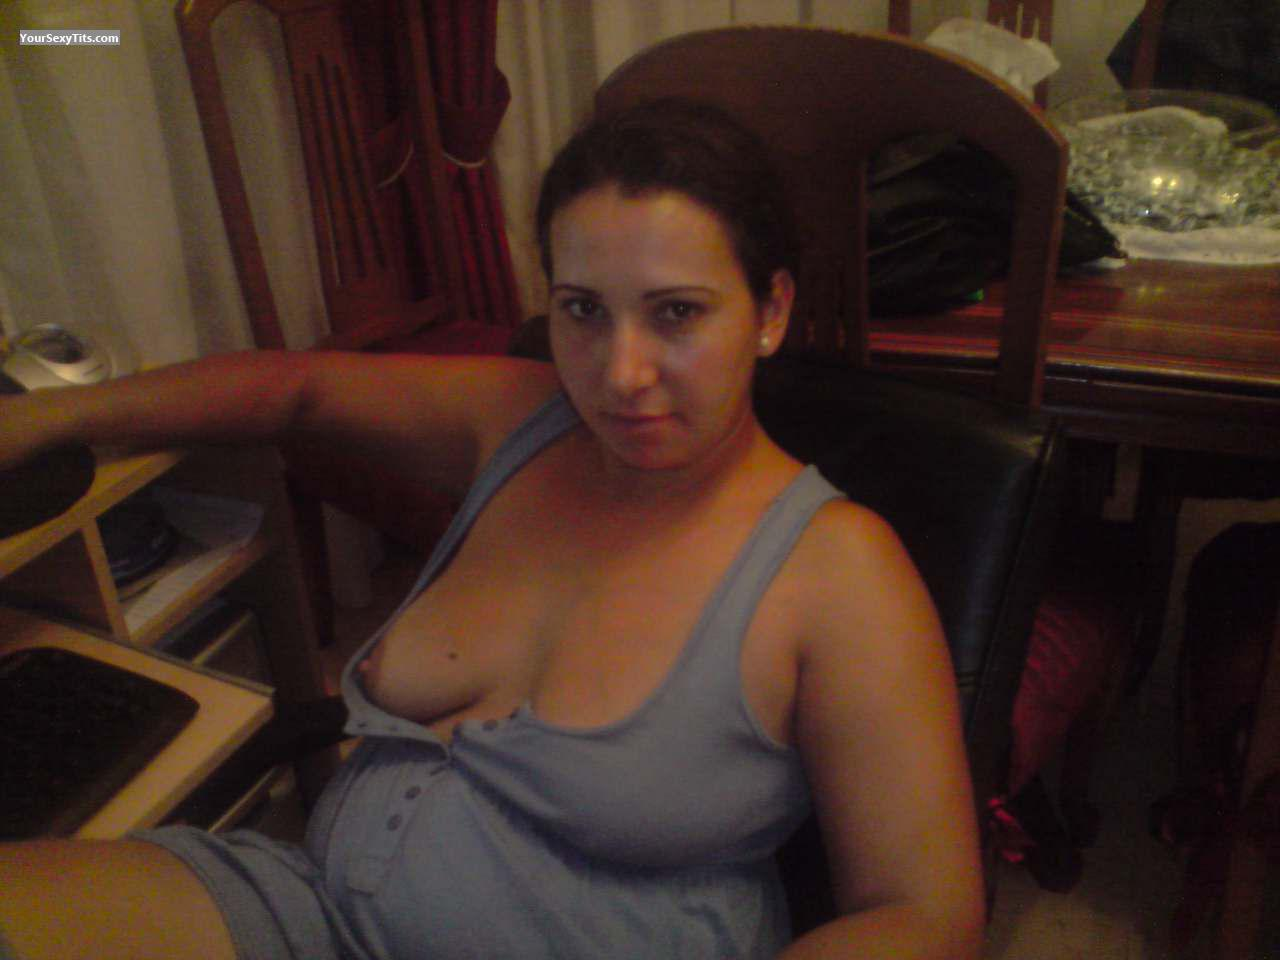 Tit Flash: Wife's Medium Tits - Topless Charco from Spain